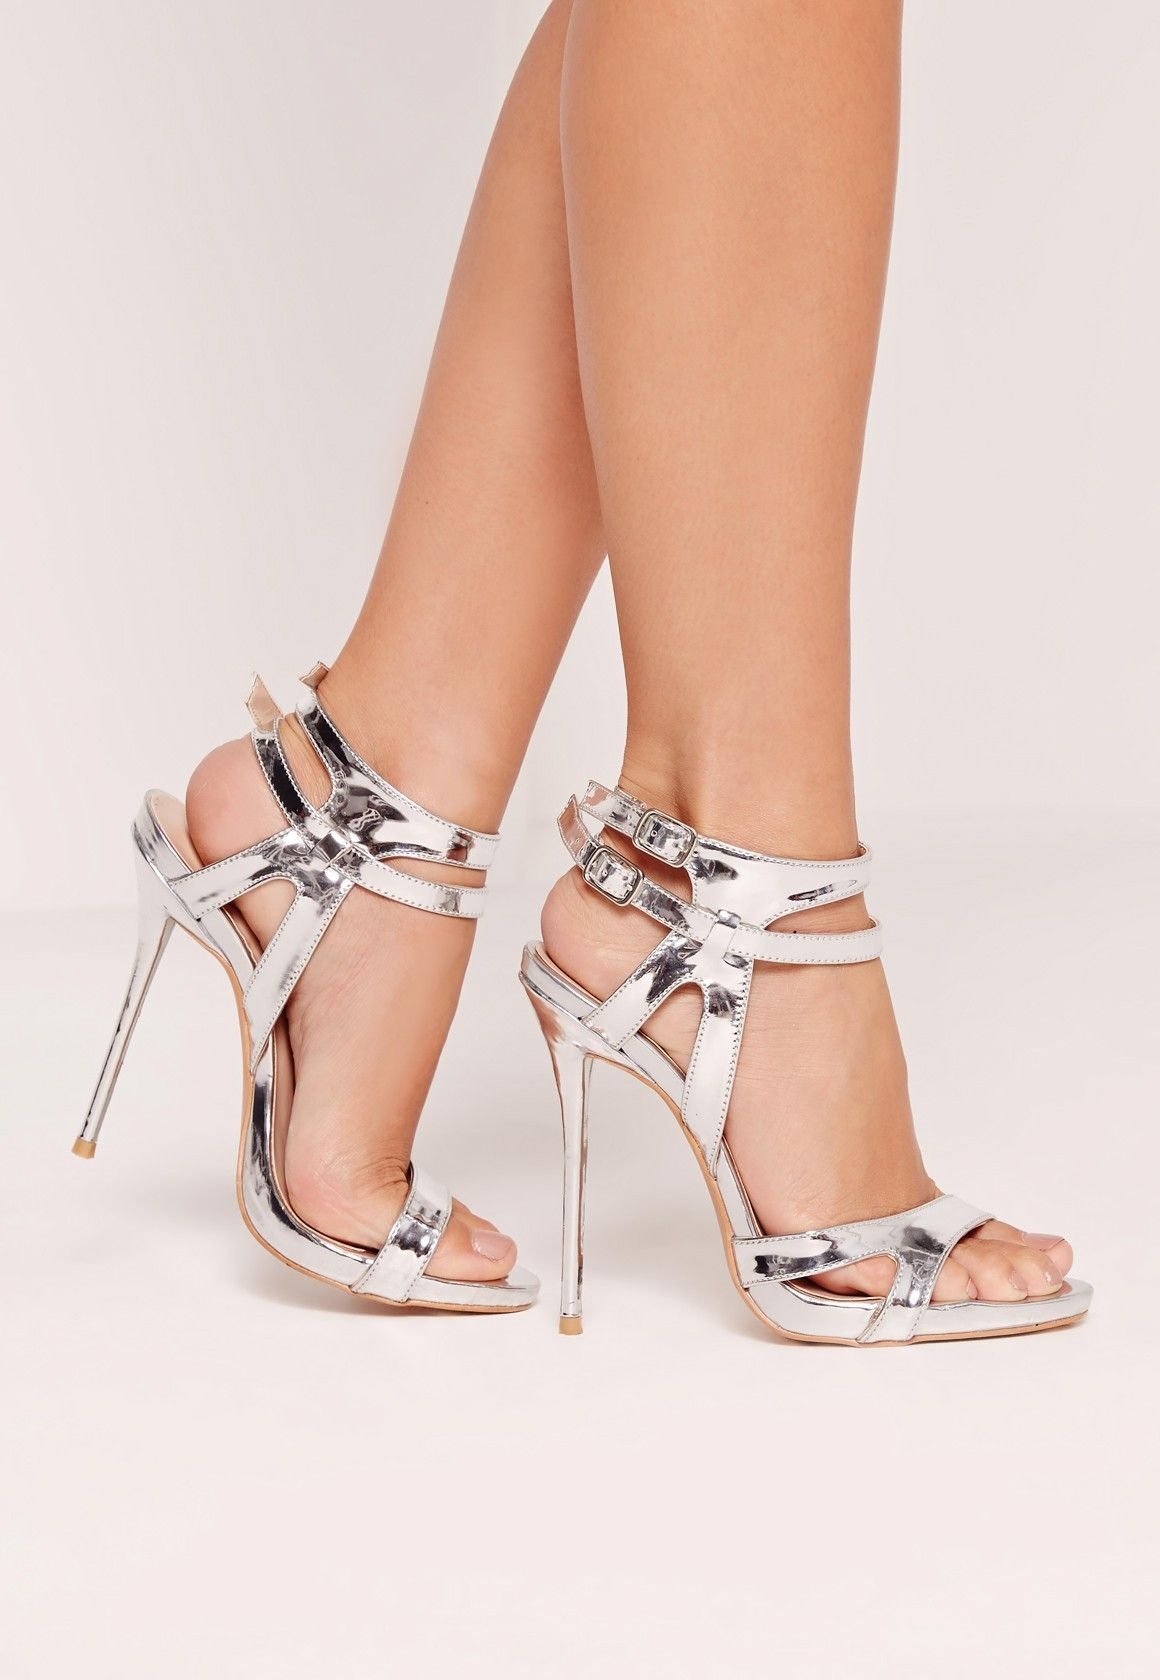 Barely There Heeled Sandals - Silver Missguided WR6tmuF5